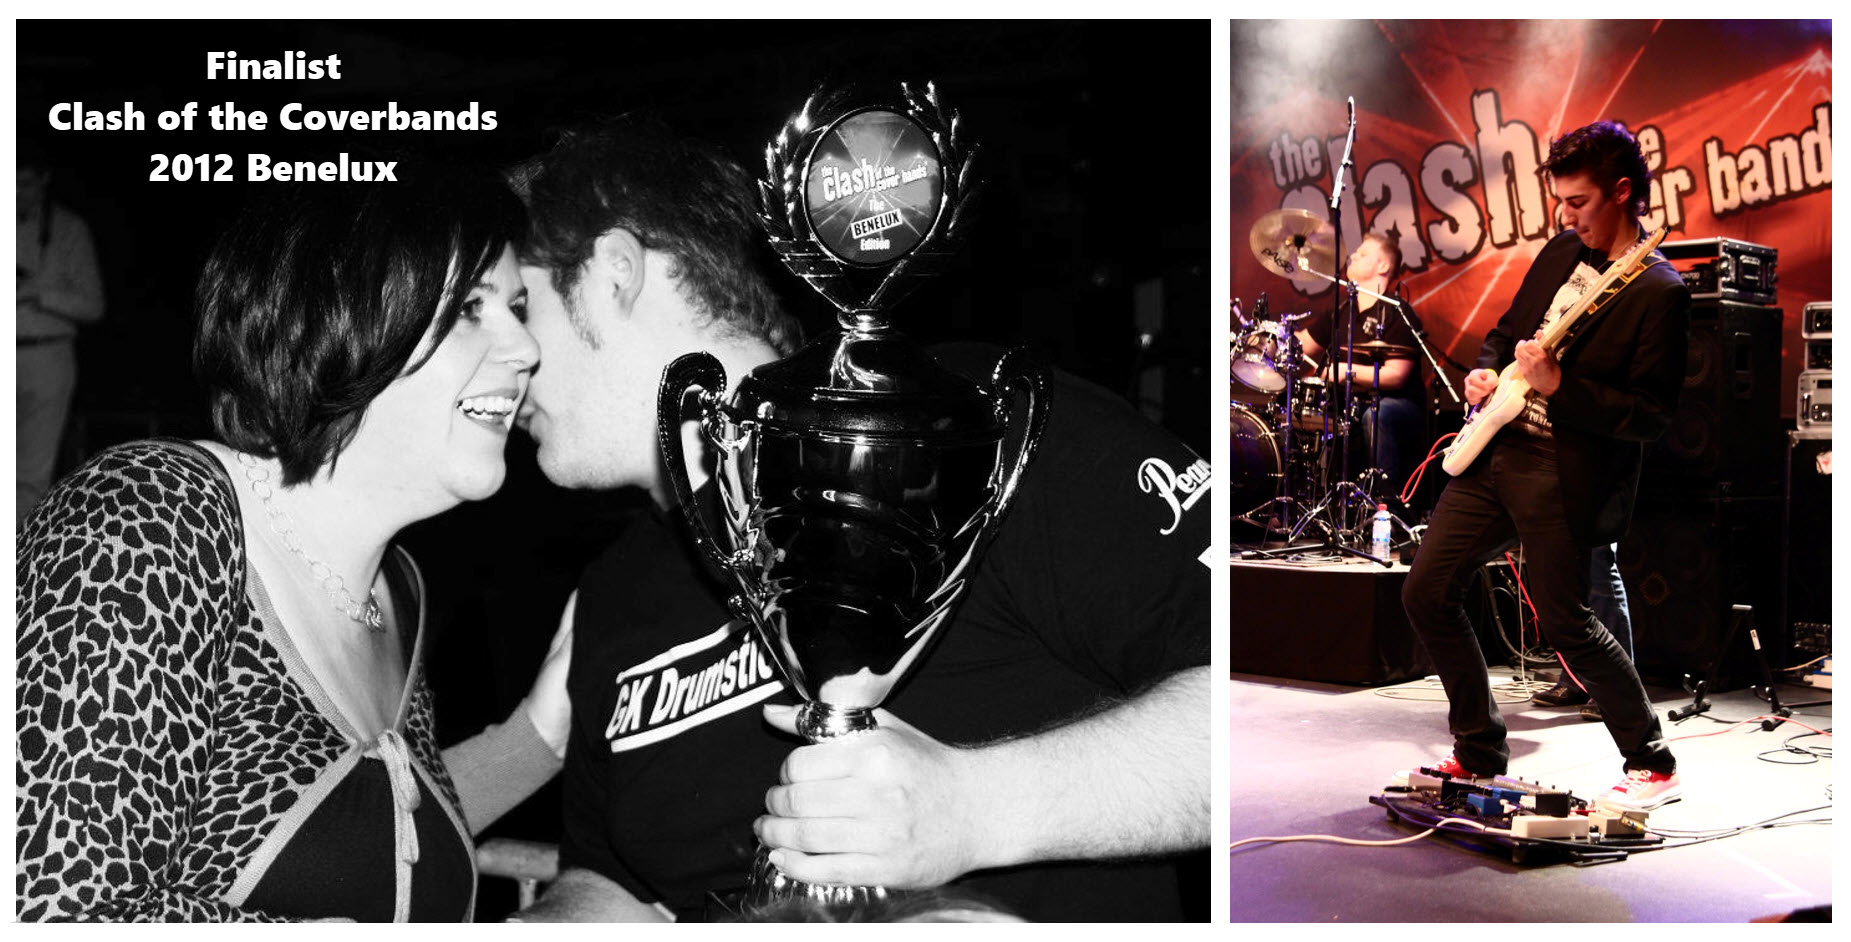 Finalist van Clash of the Coverbands 2012 Benelux